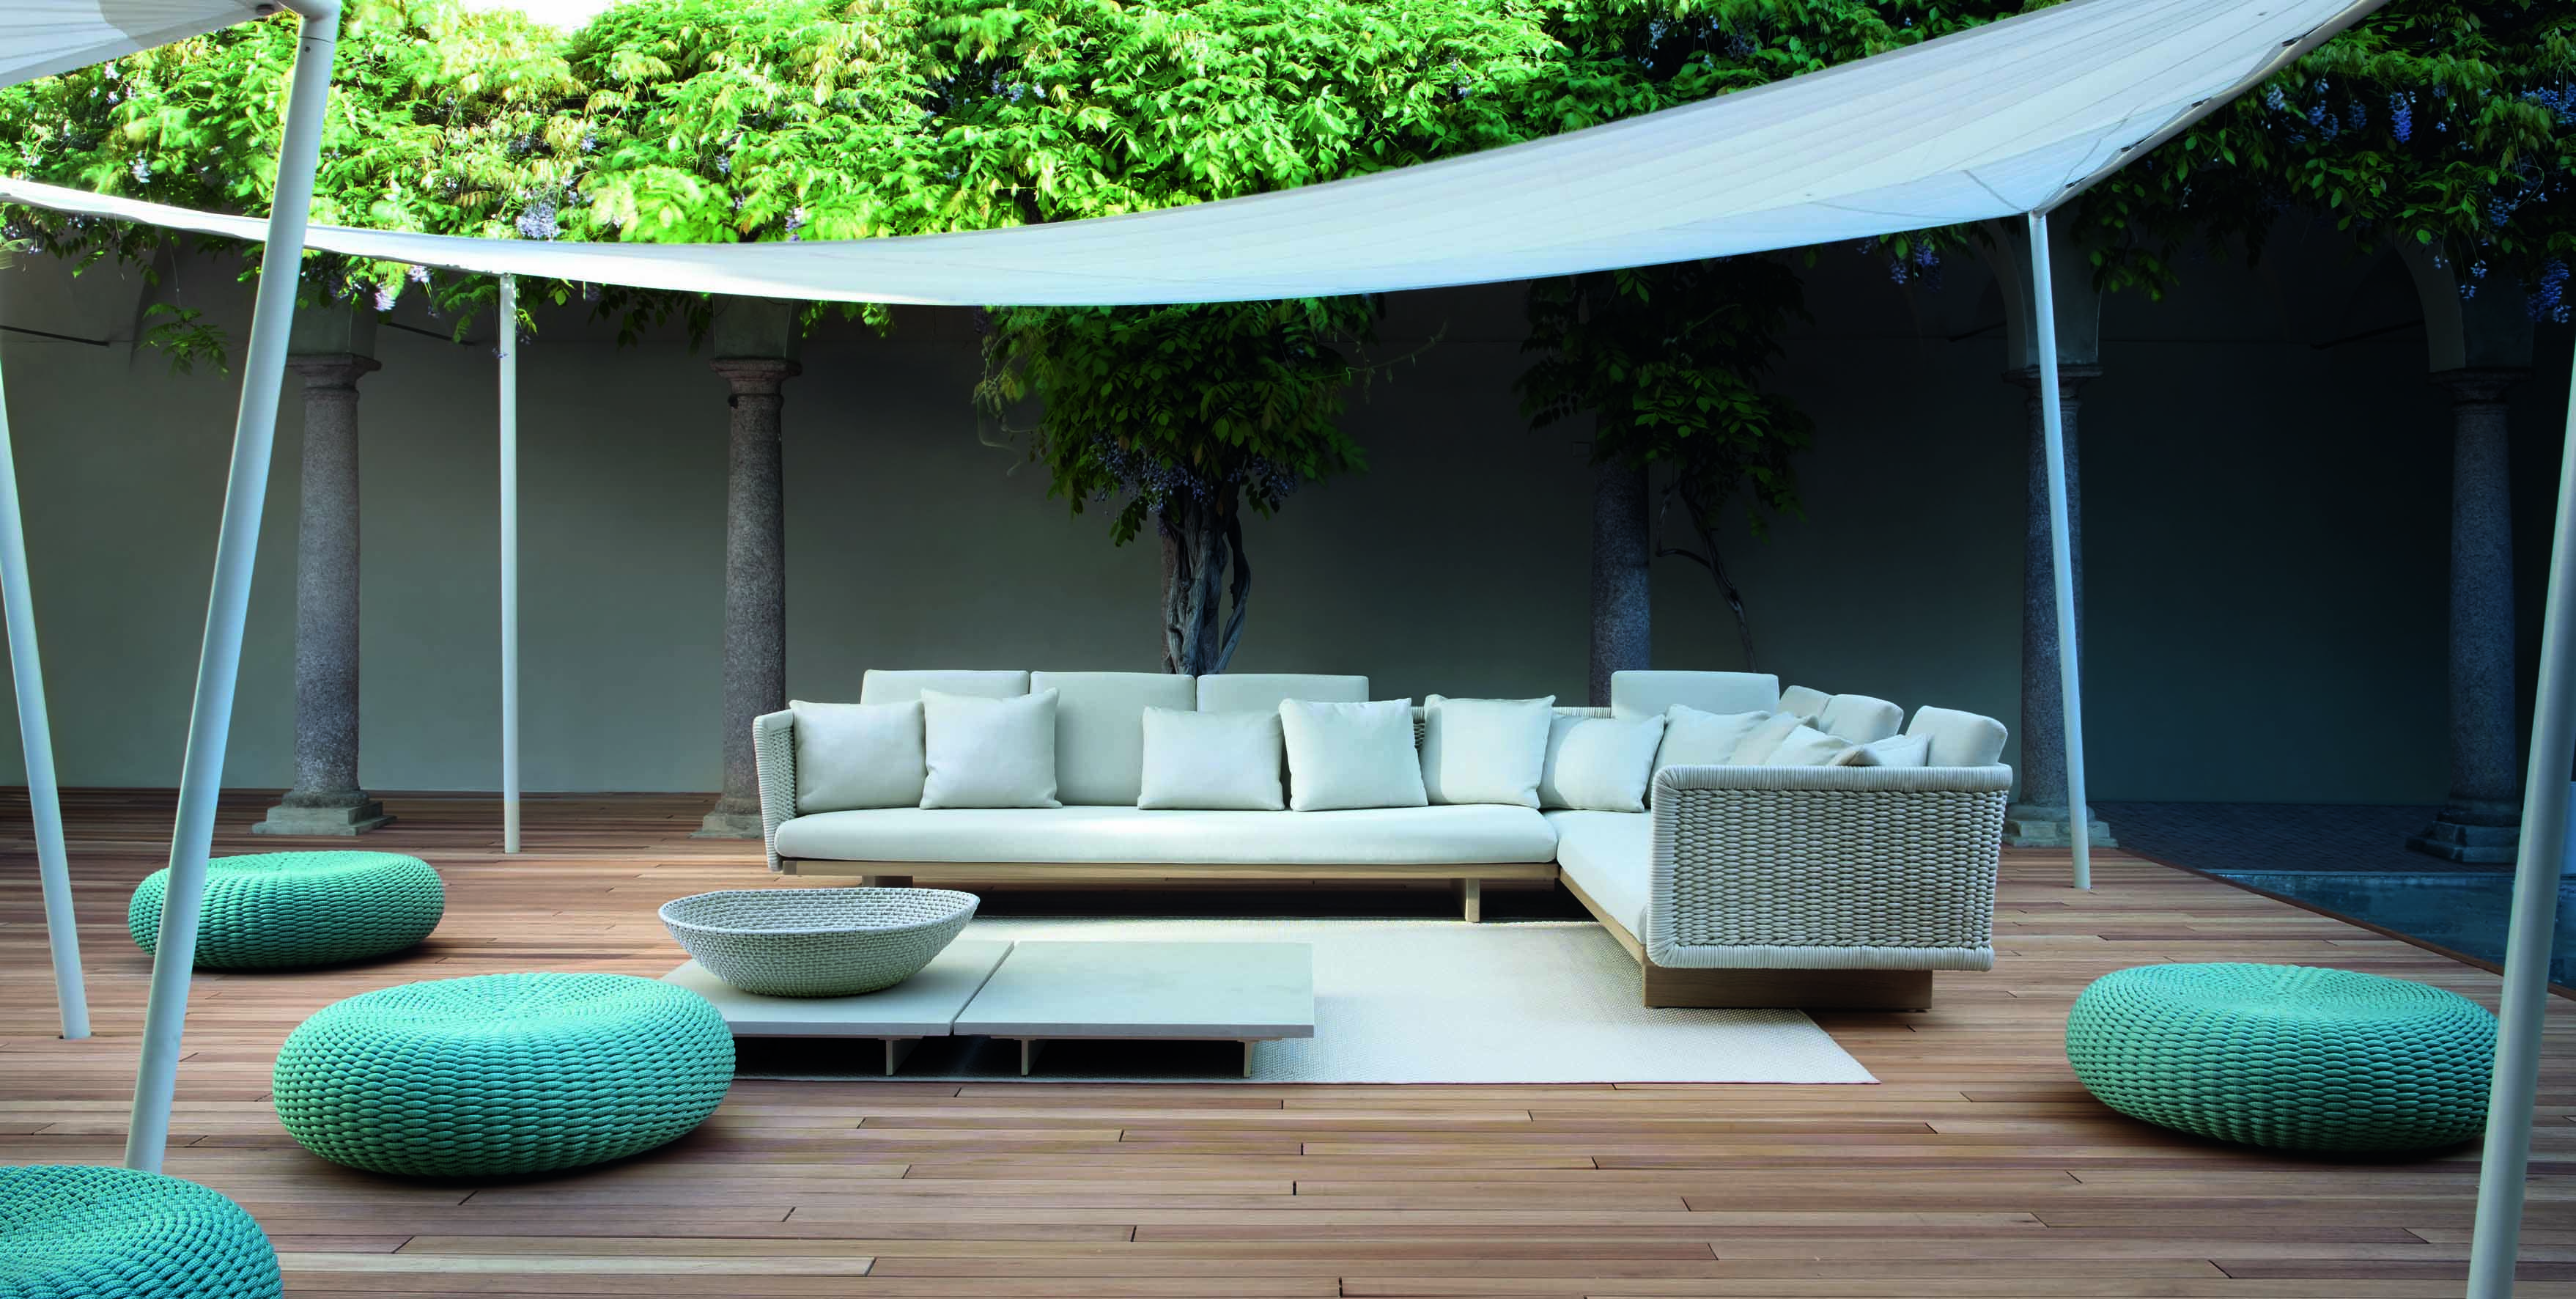 Brilliant Paola Lenti Pavilion Outdoor Furniture Collections Download Free Architecture Designs Licukmadebymaigaardcom